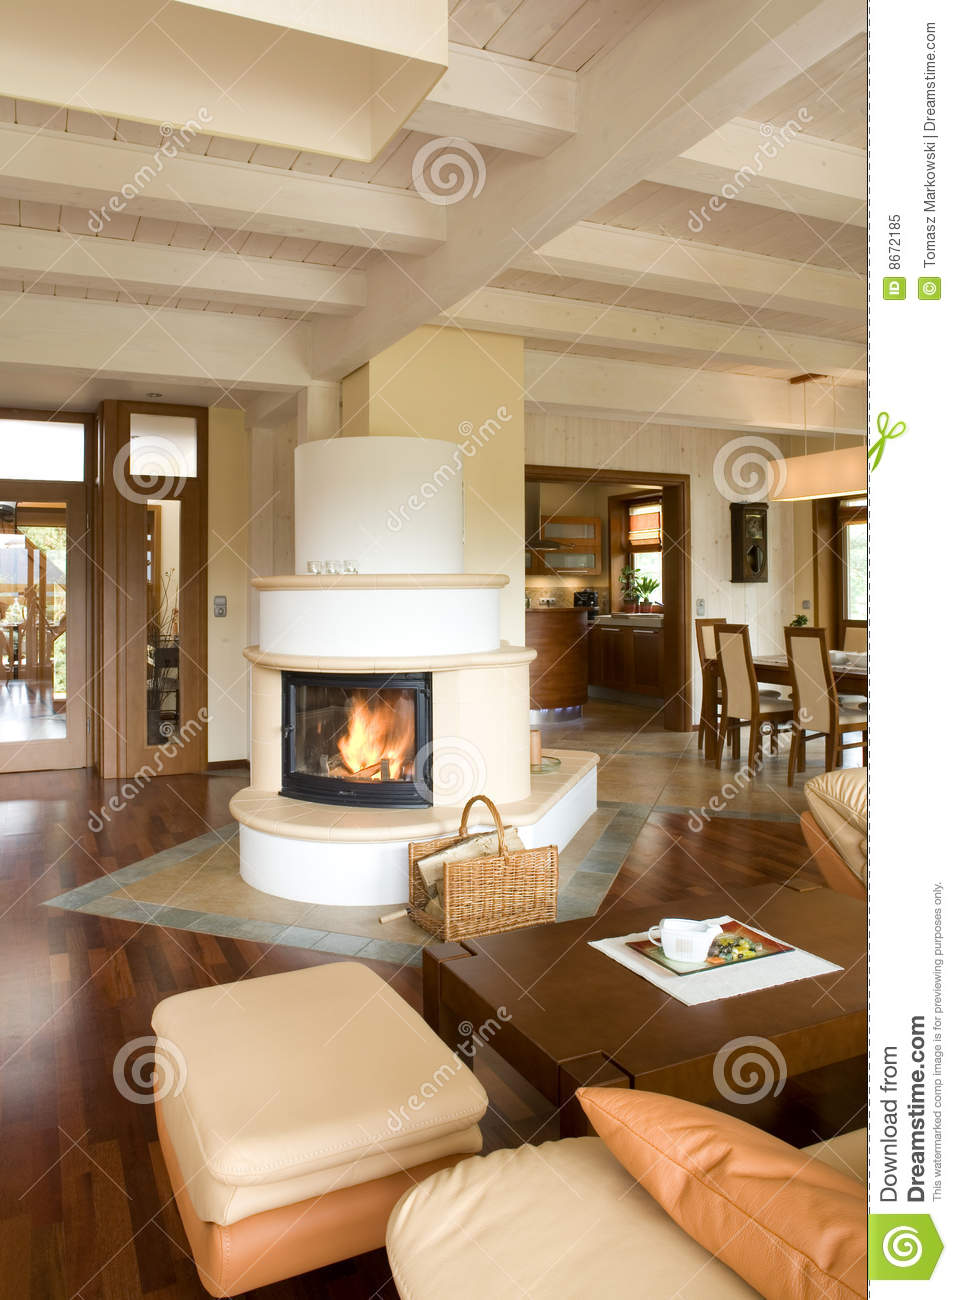 Stylish Modern Living Room With Fireplace Royalty Free